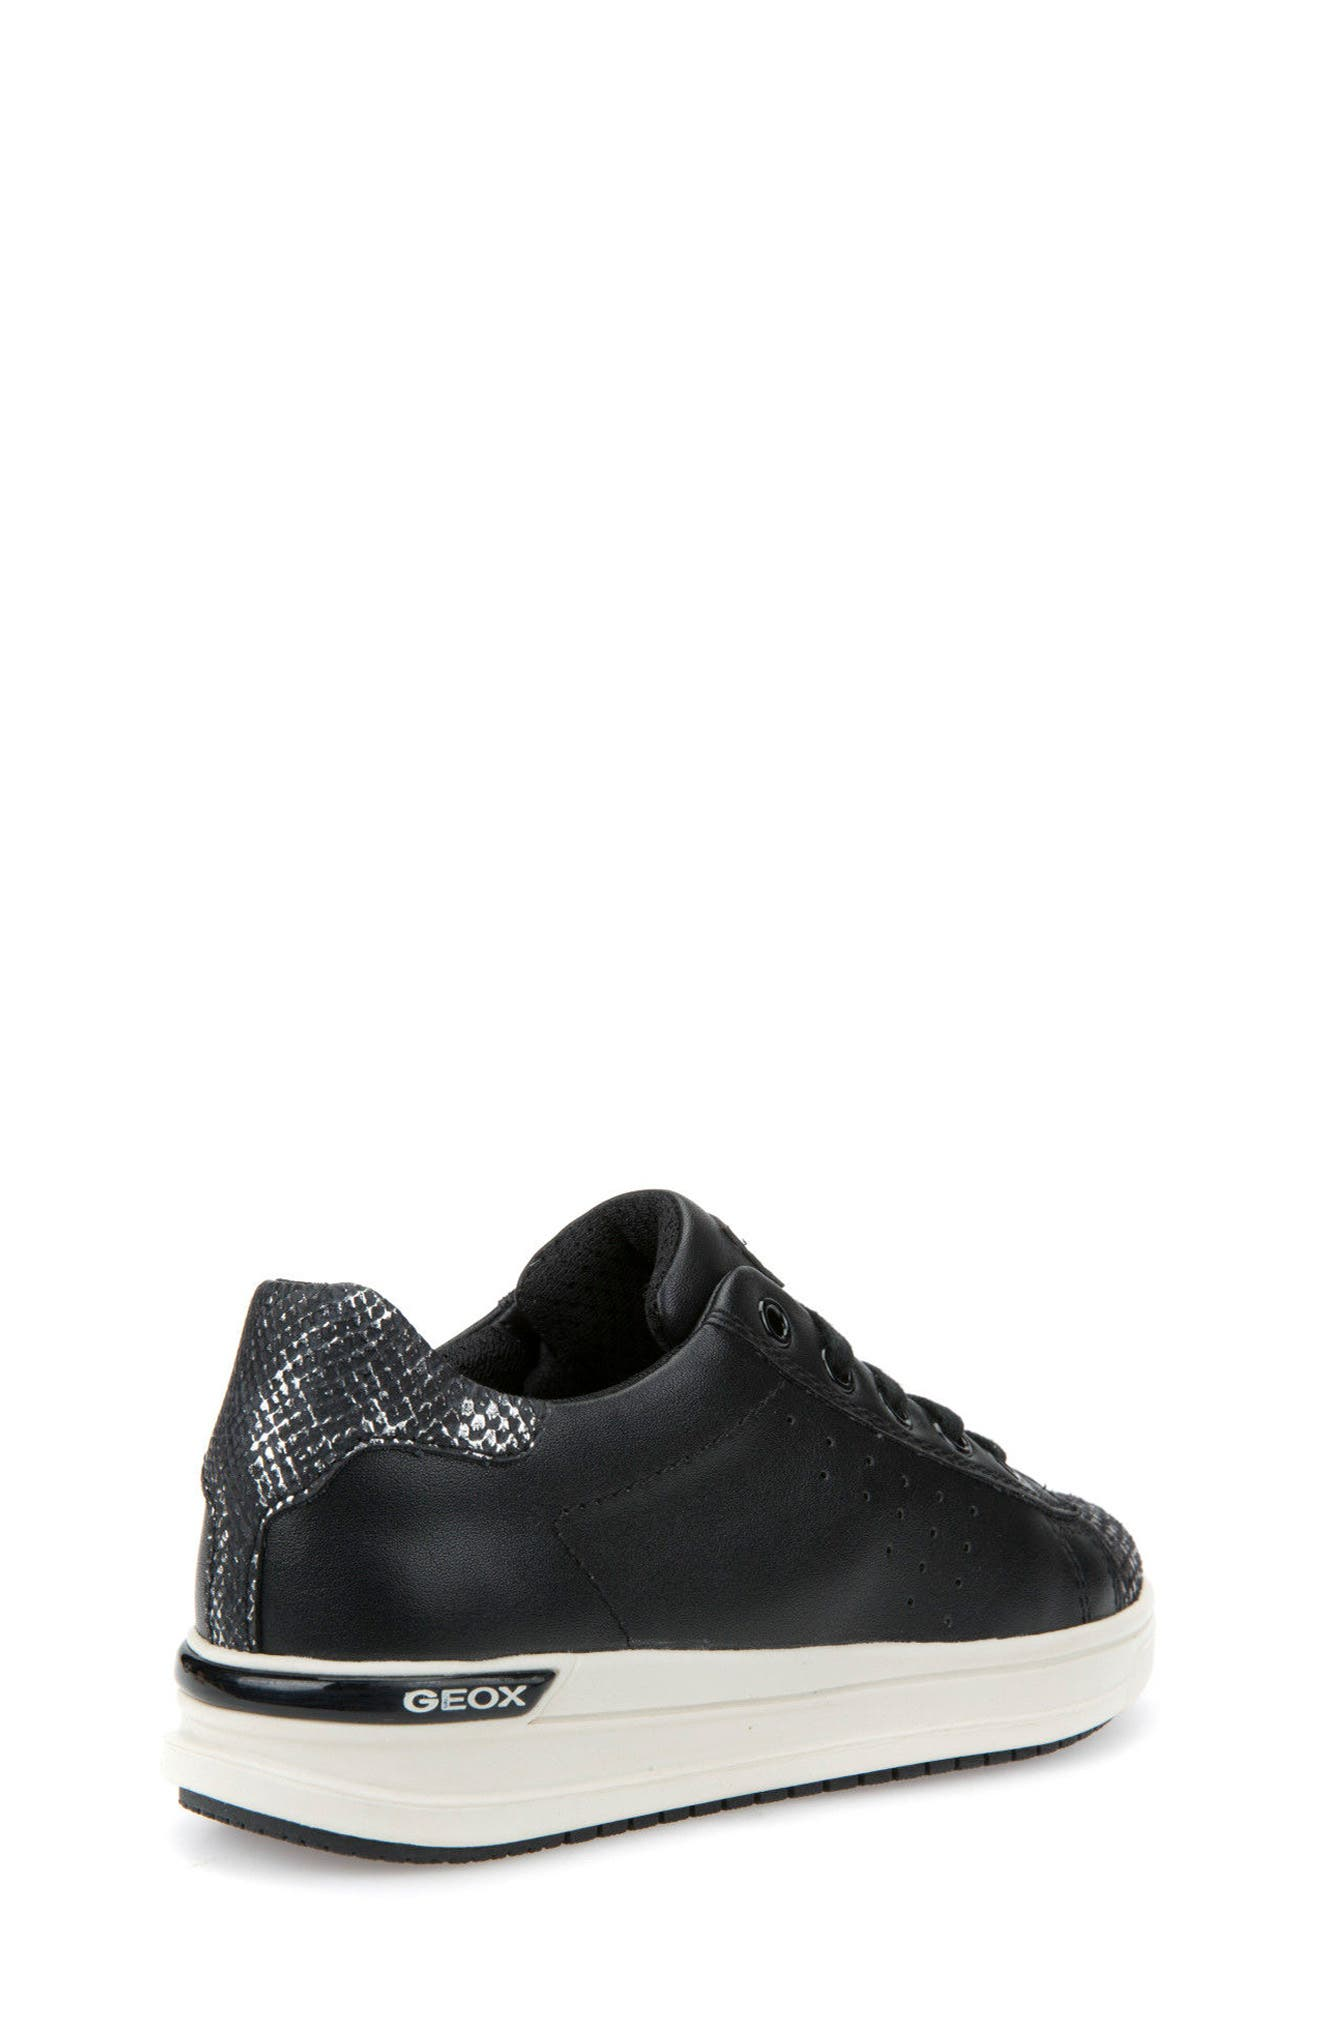 Cave Up Girl Low Top Sneaker,                             Alternate thumbnail 2, color,                             001